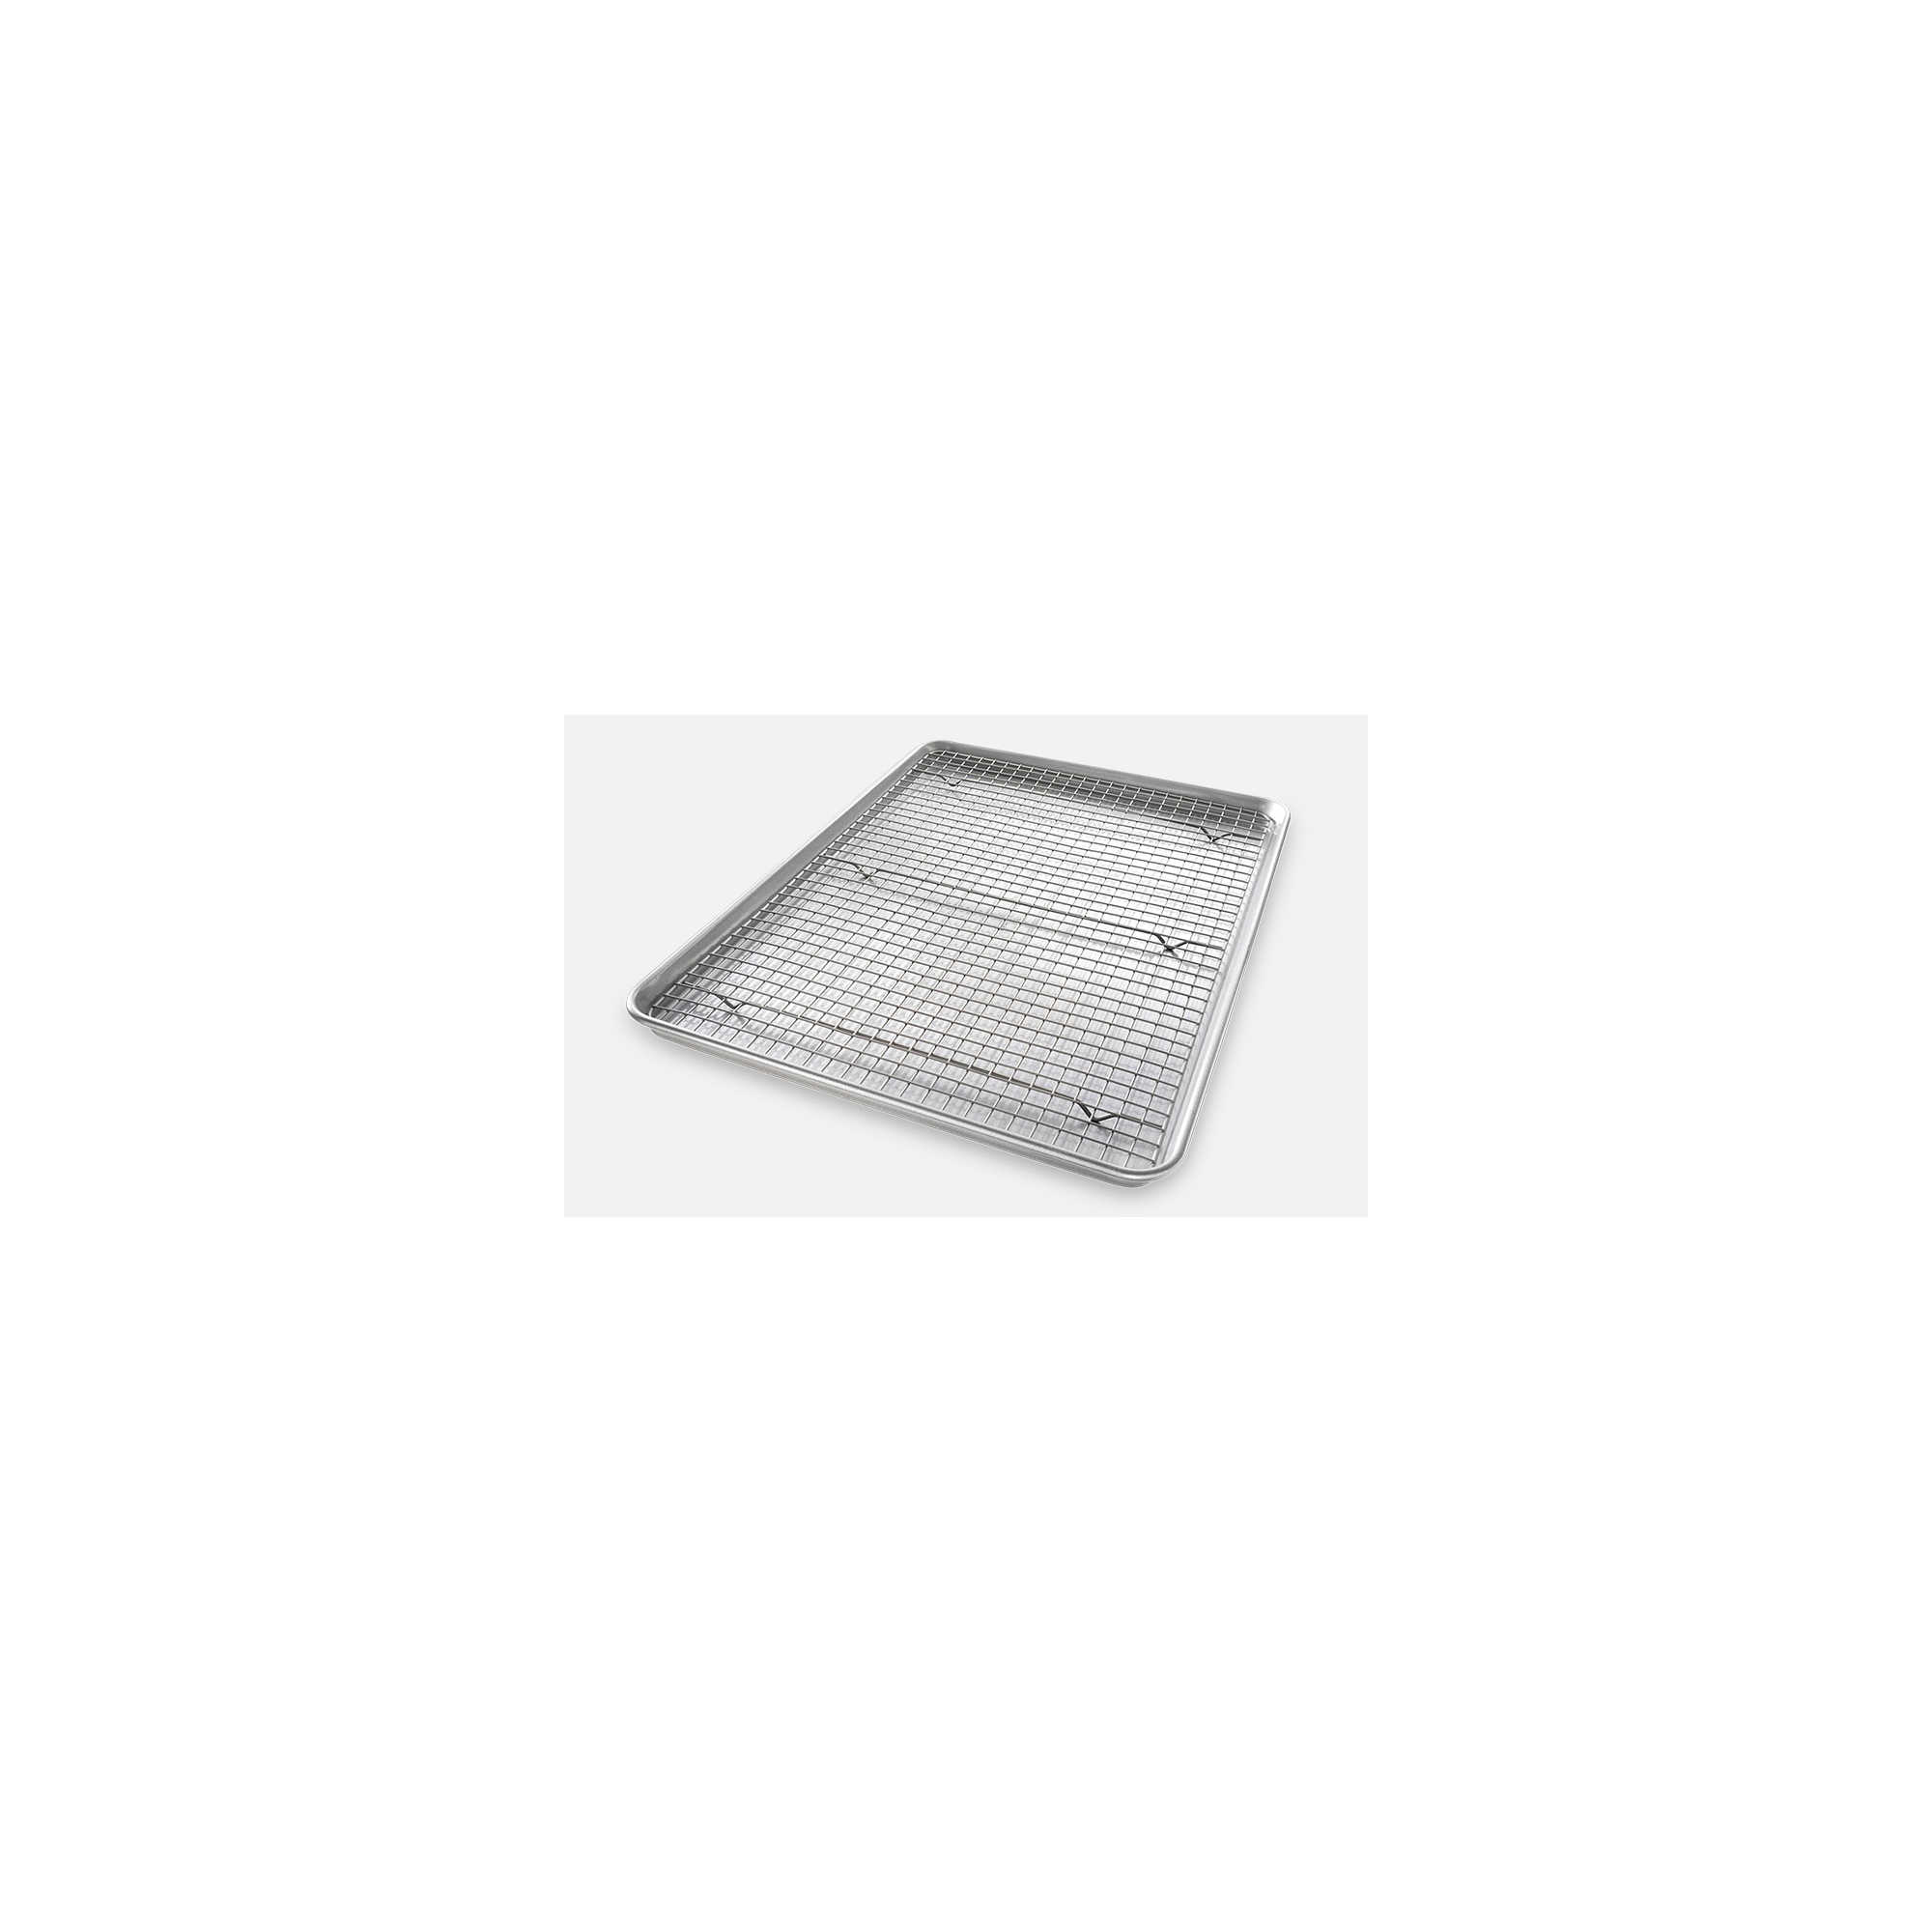 Bed Bath And Beyond Cooking Sheet With Rack